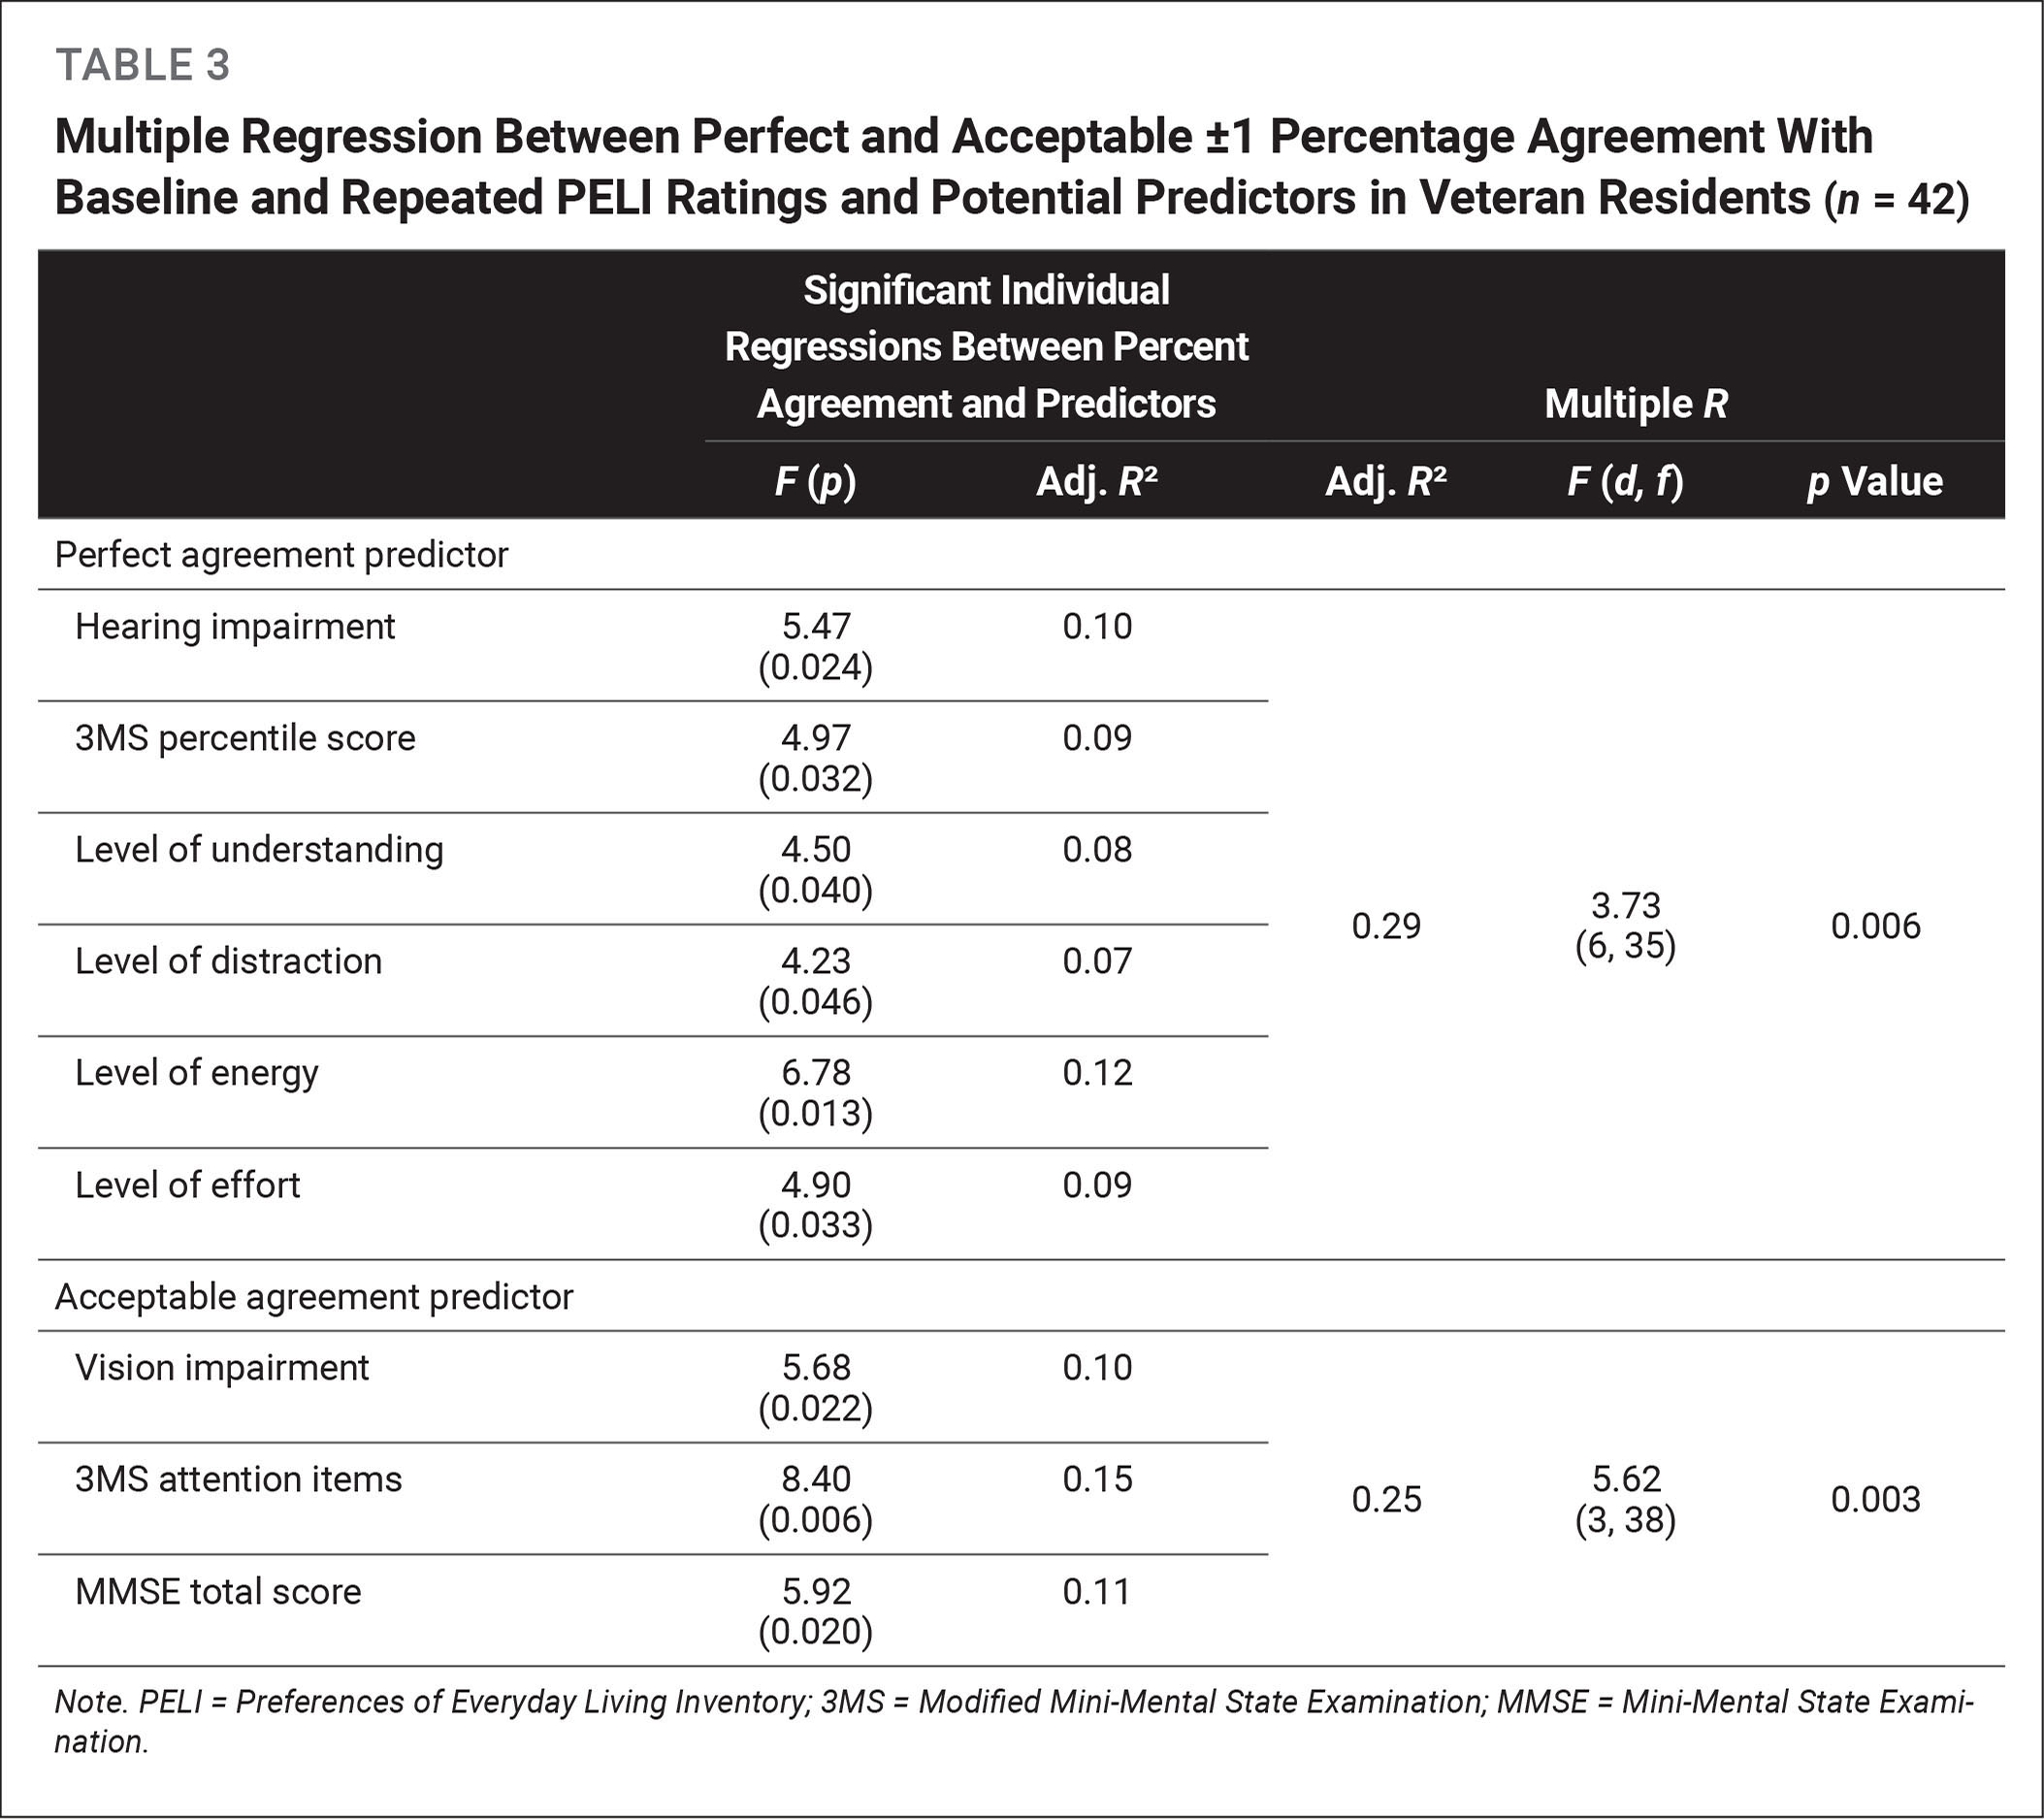 Multiple Regression Between Perfect and Acceptable ±1 Percentage Agreement With Baseline and Repeated PELI Ratings and Potential Predictors in Veteran Residents (n = 42)